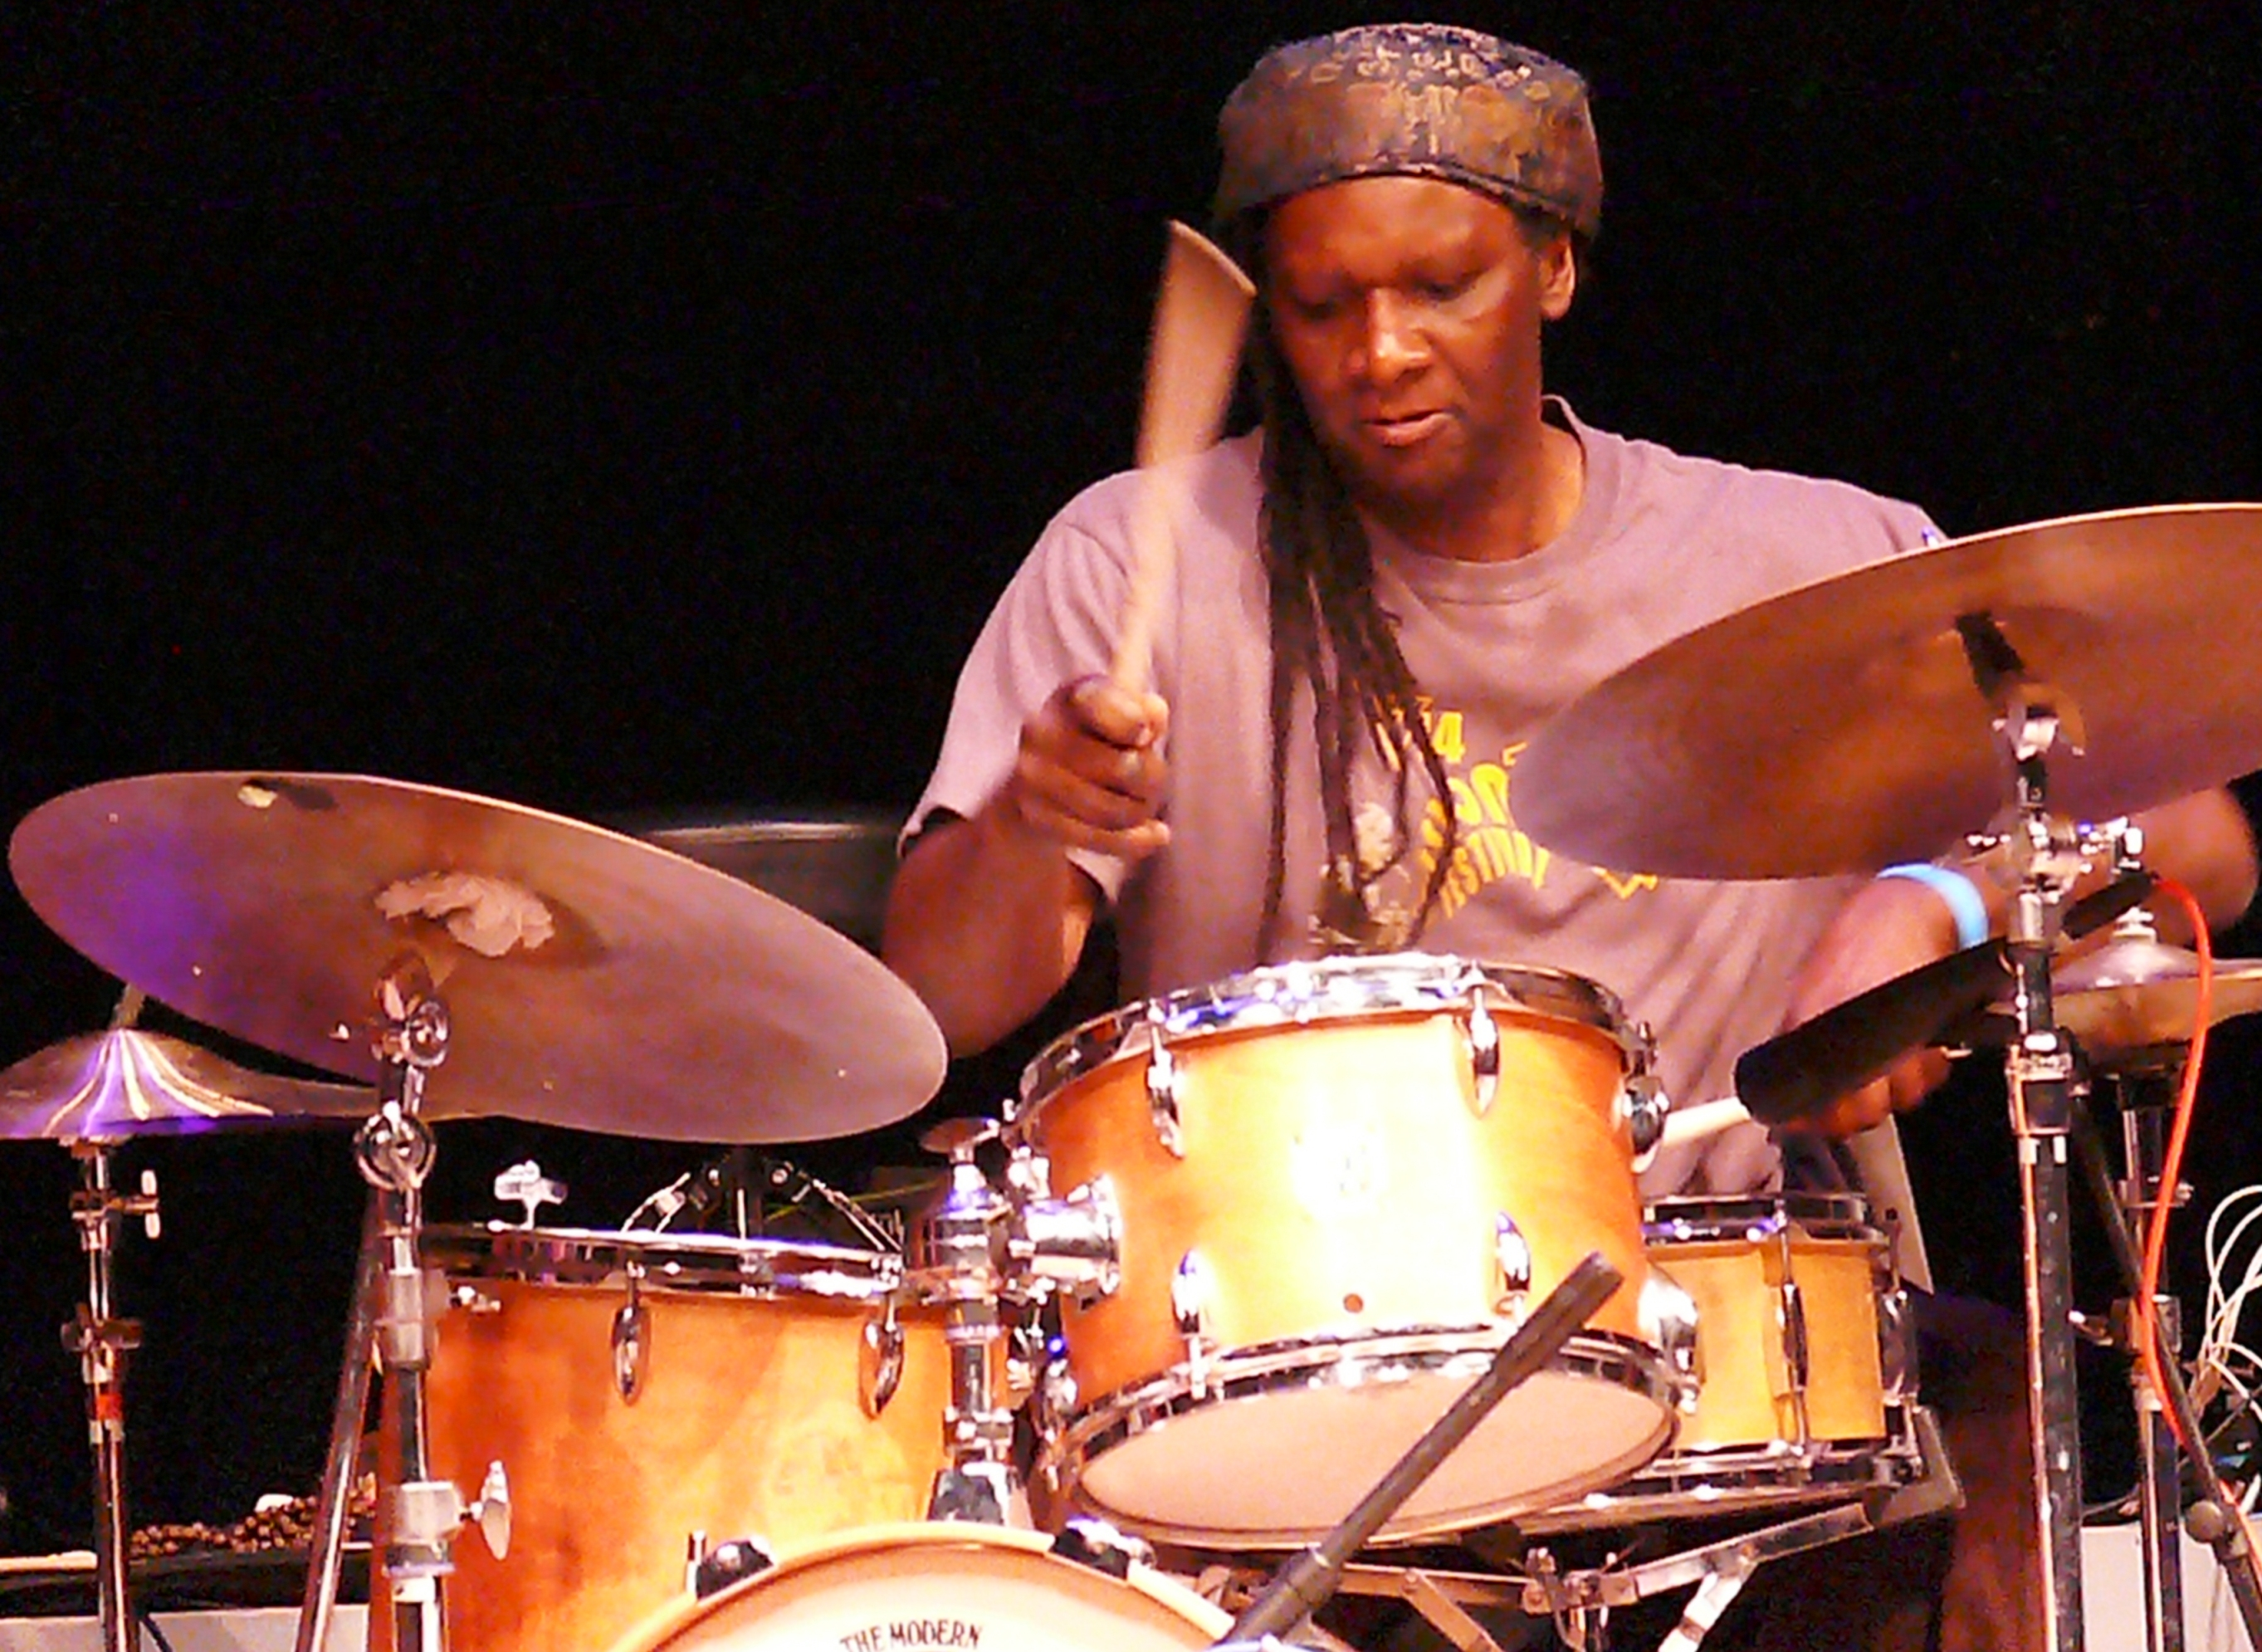 Hamid drake at the vision festival, new york in june 2013